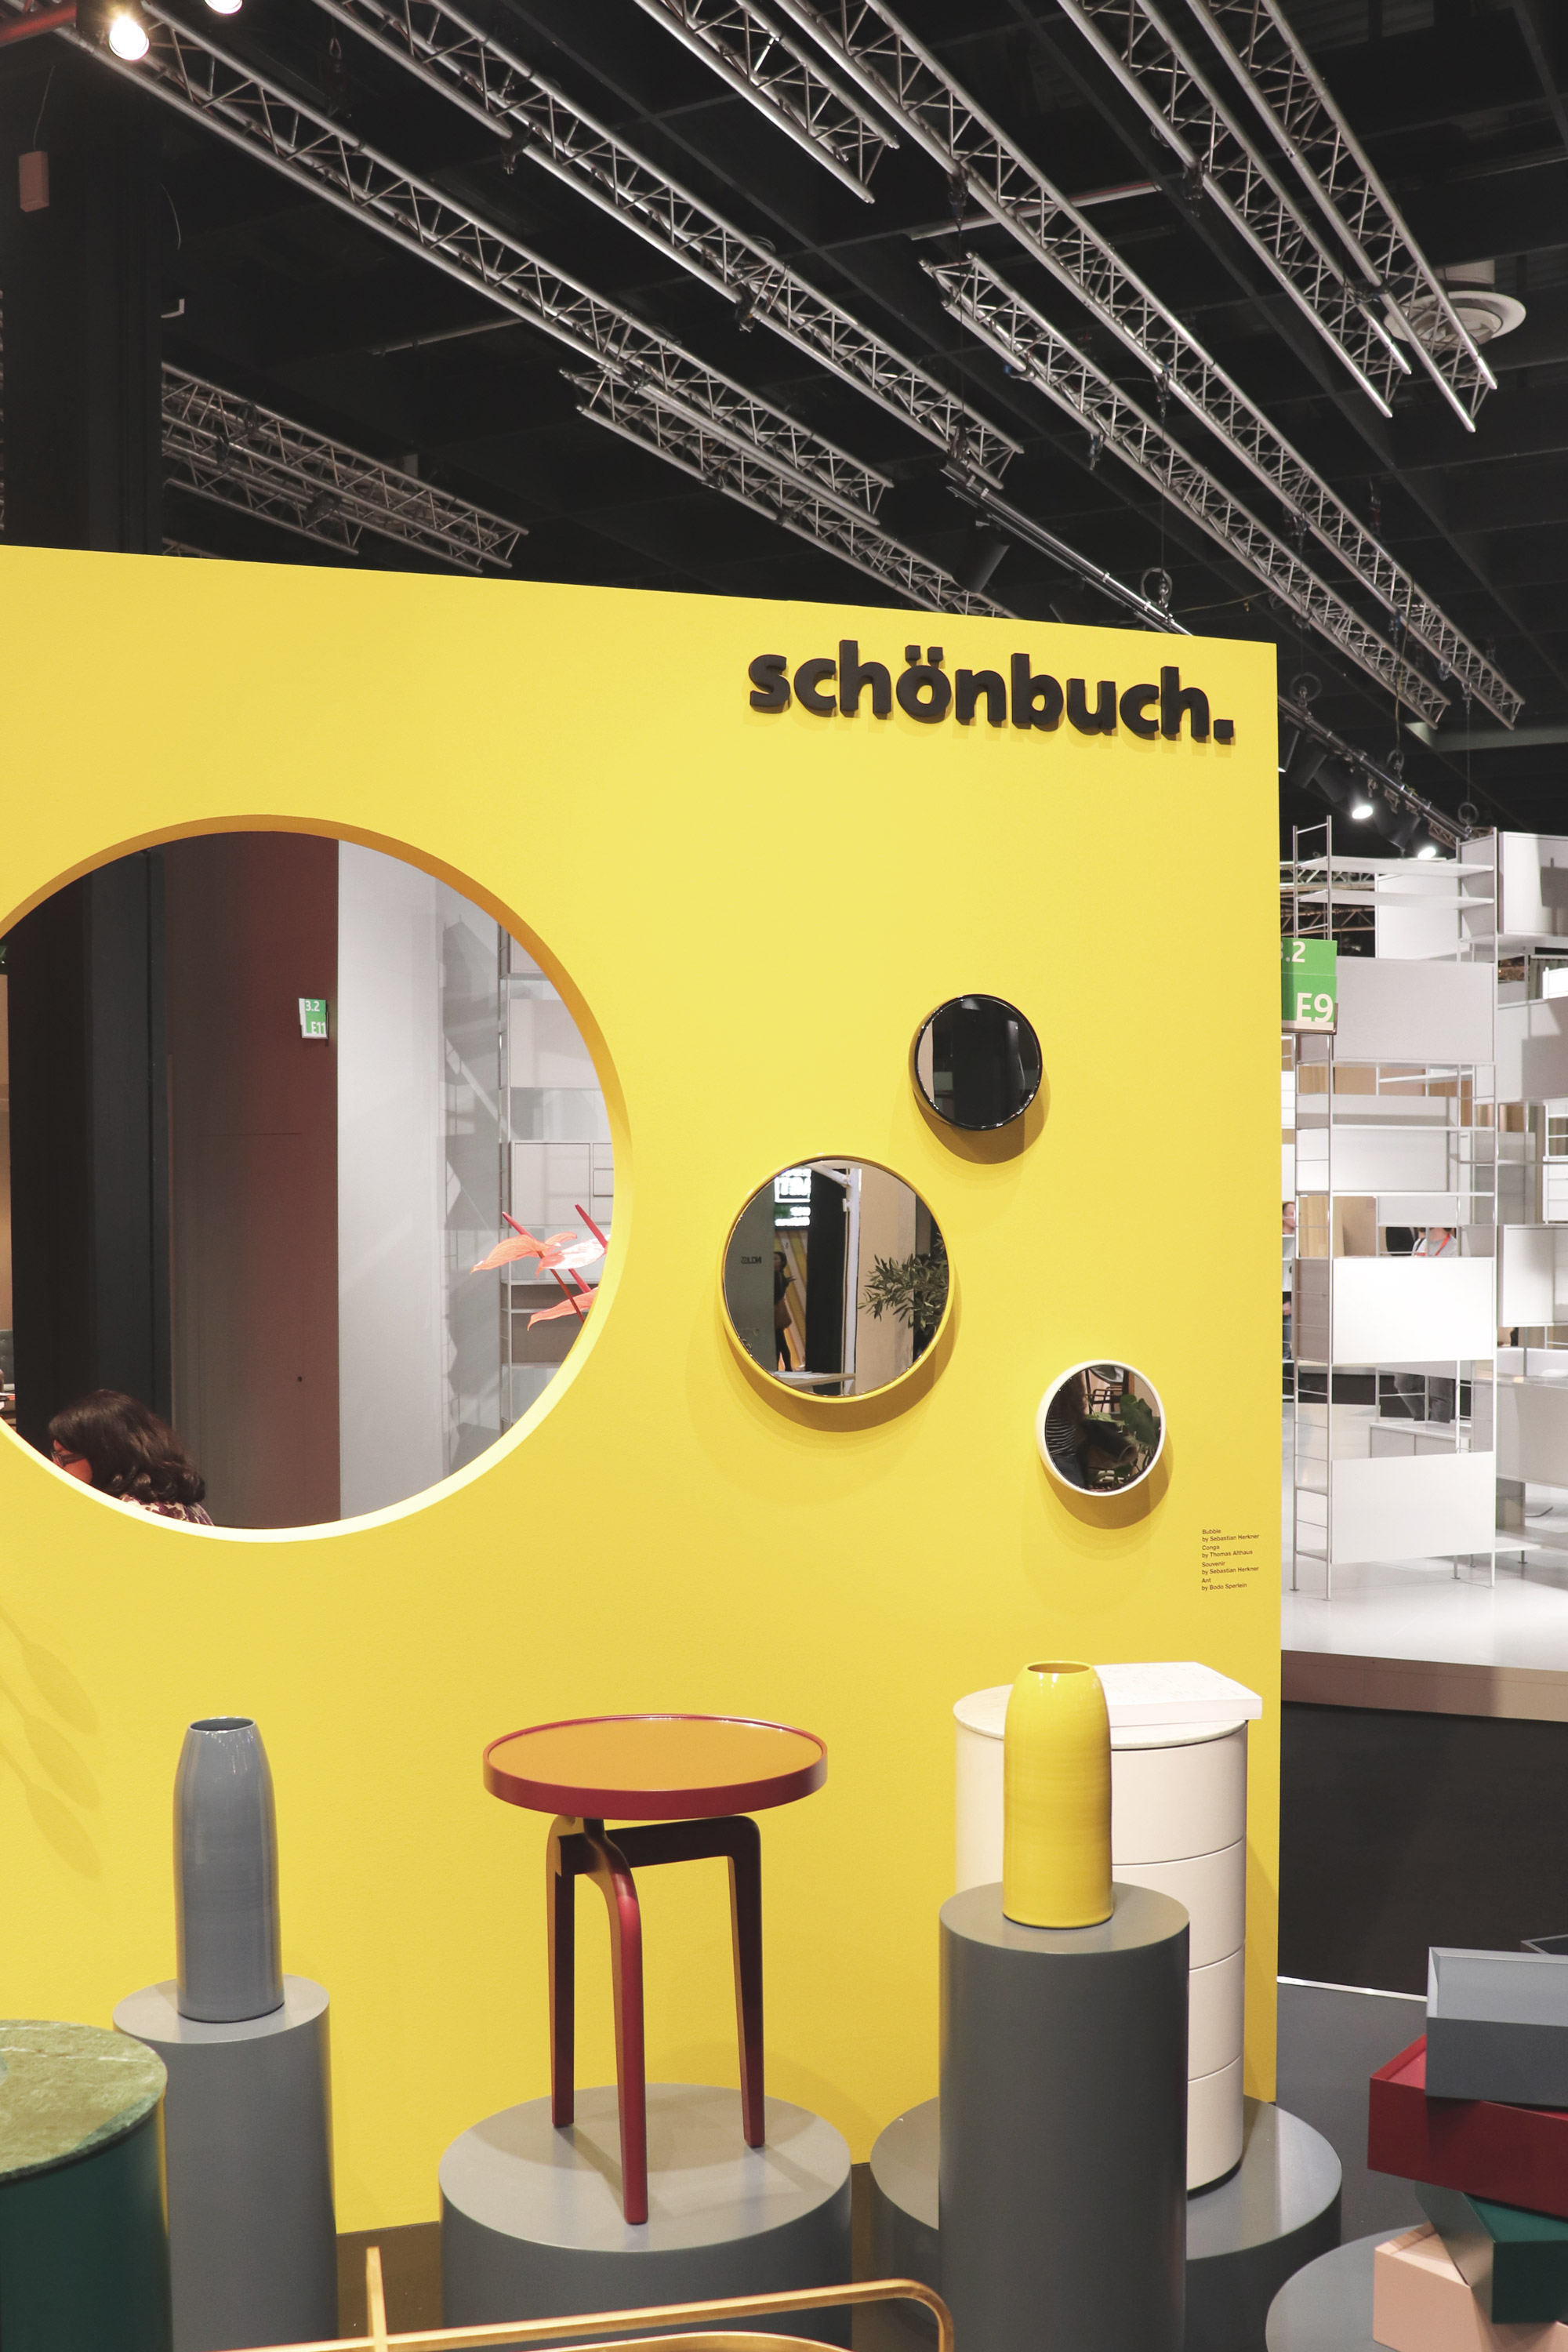 Schonbuch Design Collaboration Launched at IMM 2019, Design by Bodo Sperlein